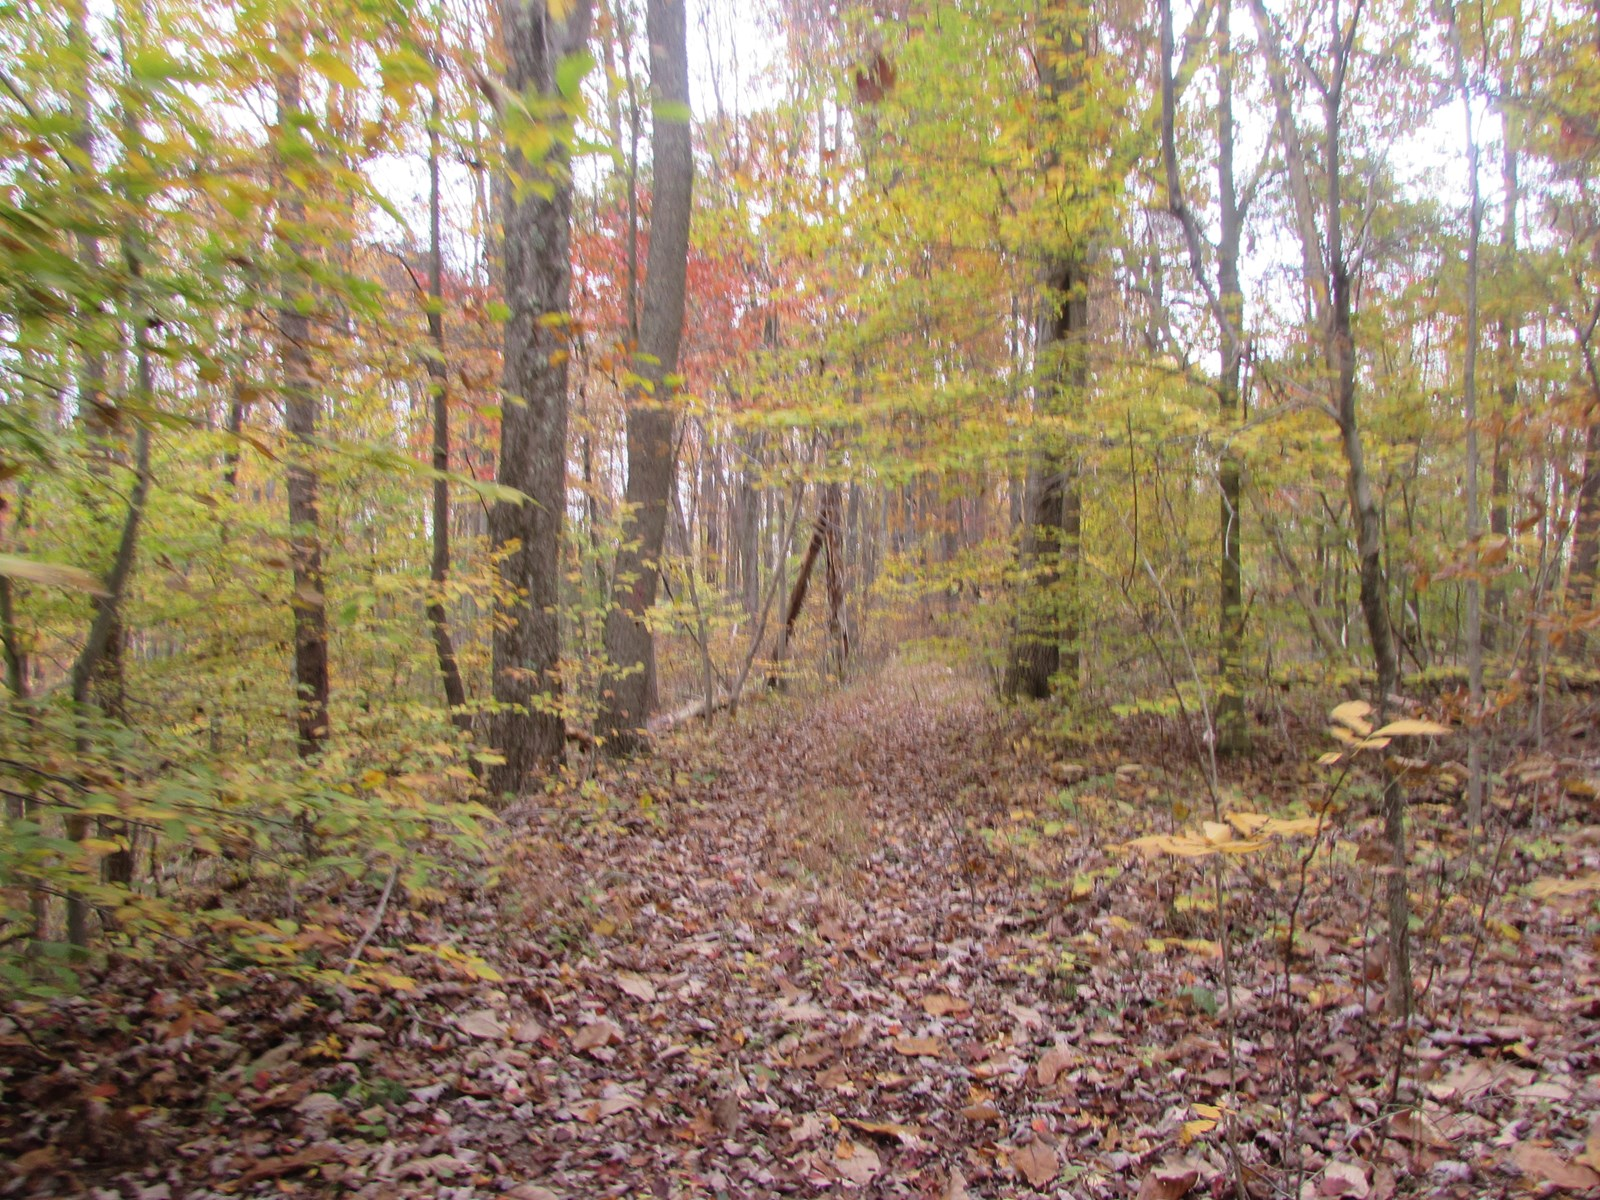 74 Acres of Wooded Land with Opportunity in WV